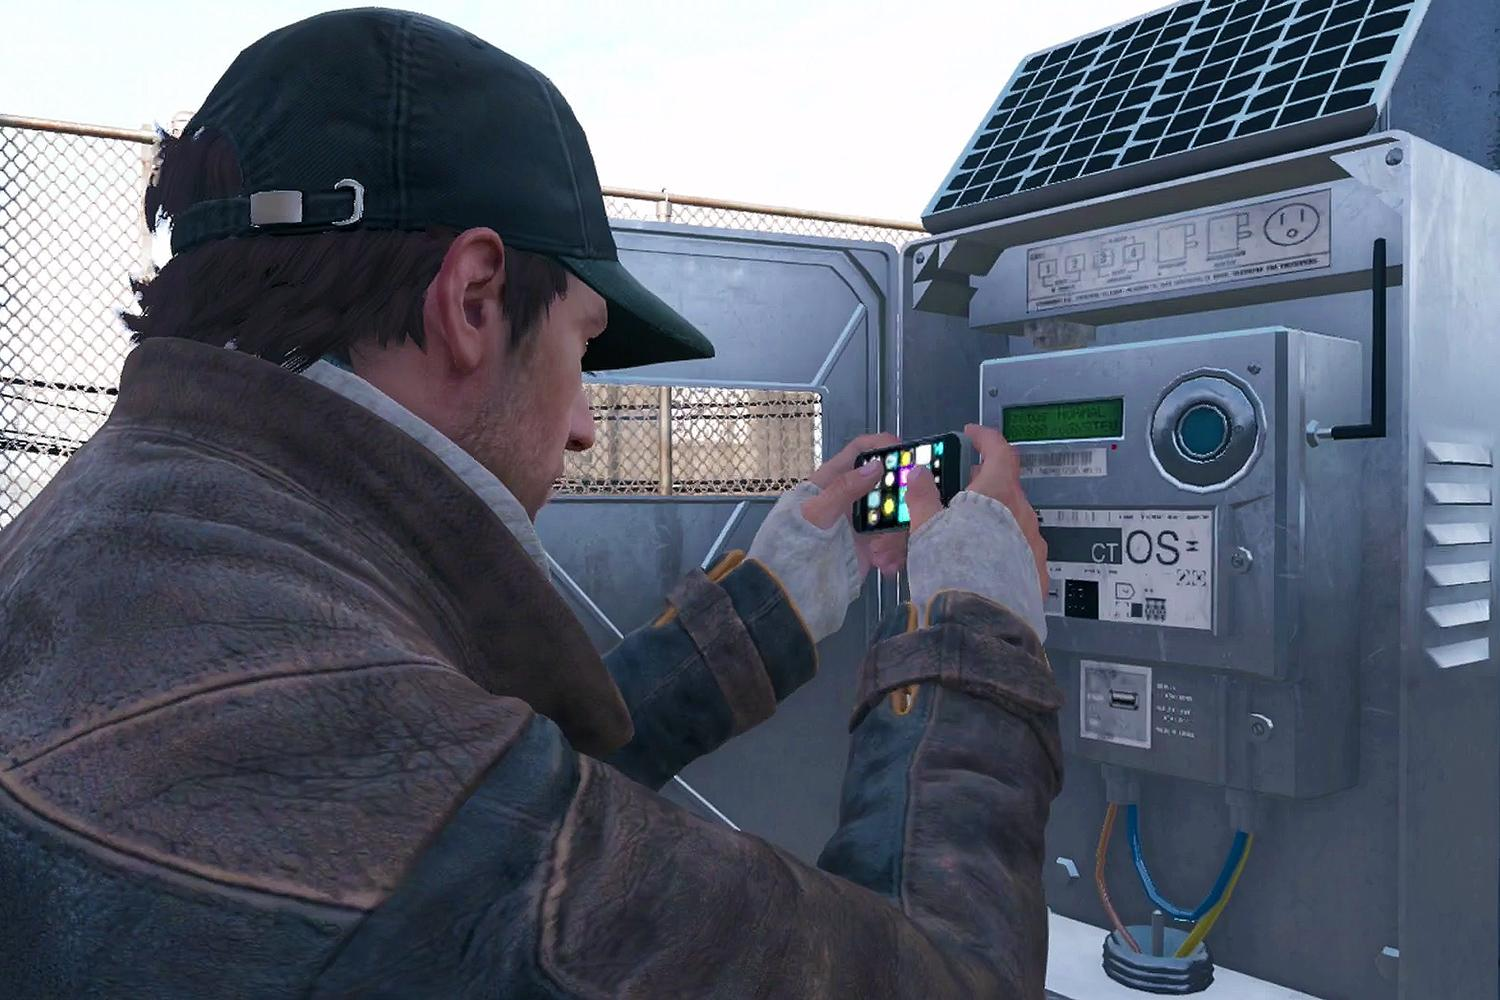 Ctos Boxes Watch Dogs